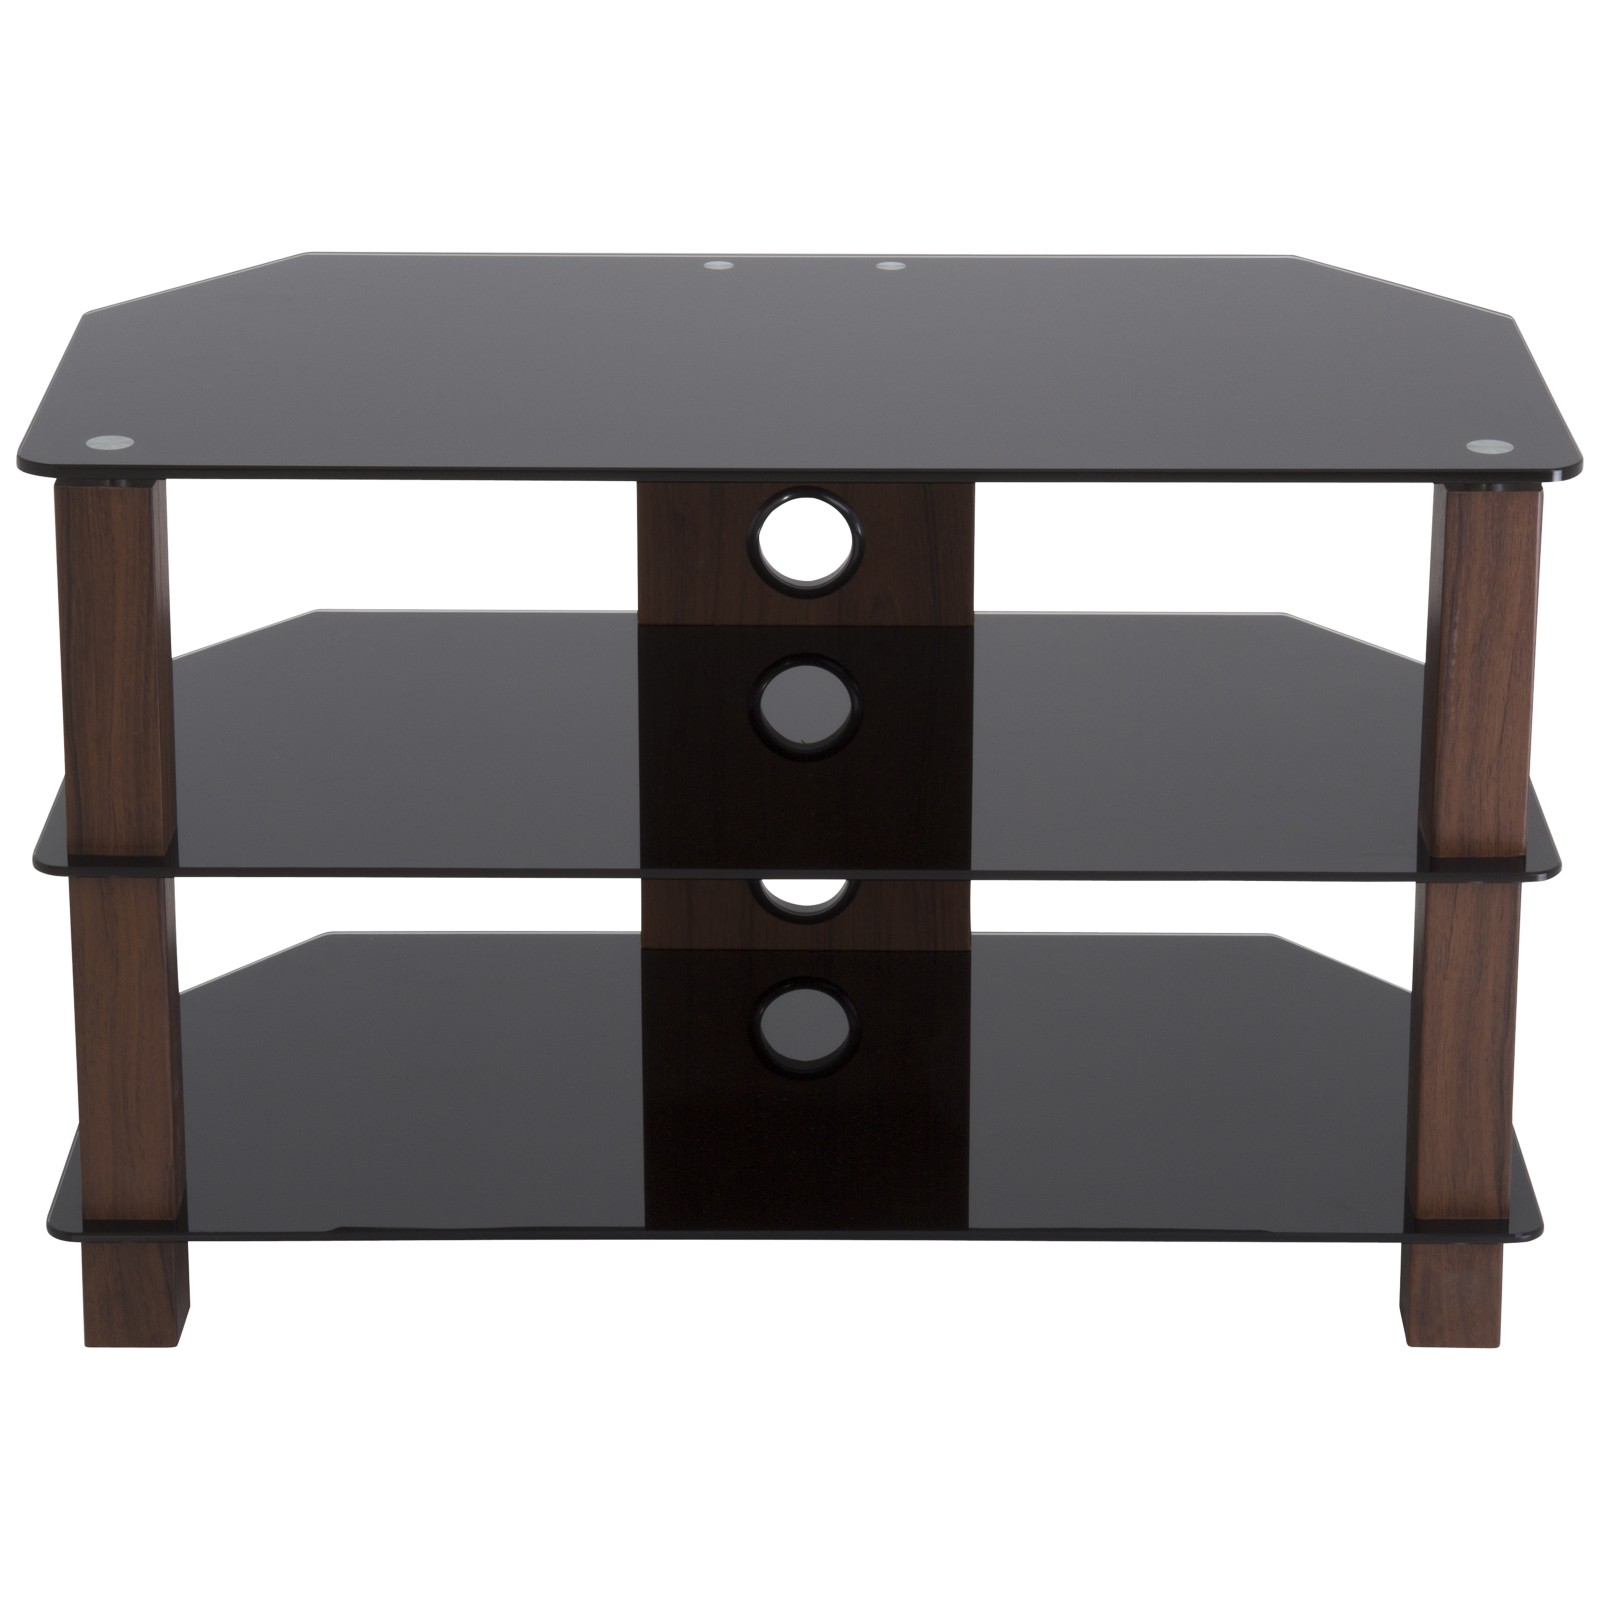 "John Lewis WG800 TV Stand for TVs up to 40"" Walnut/ Black Glass"